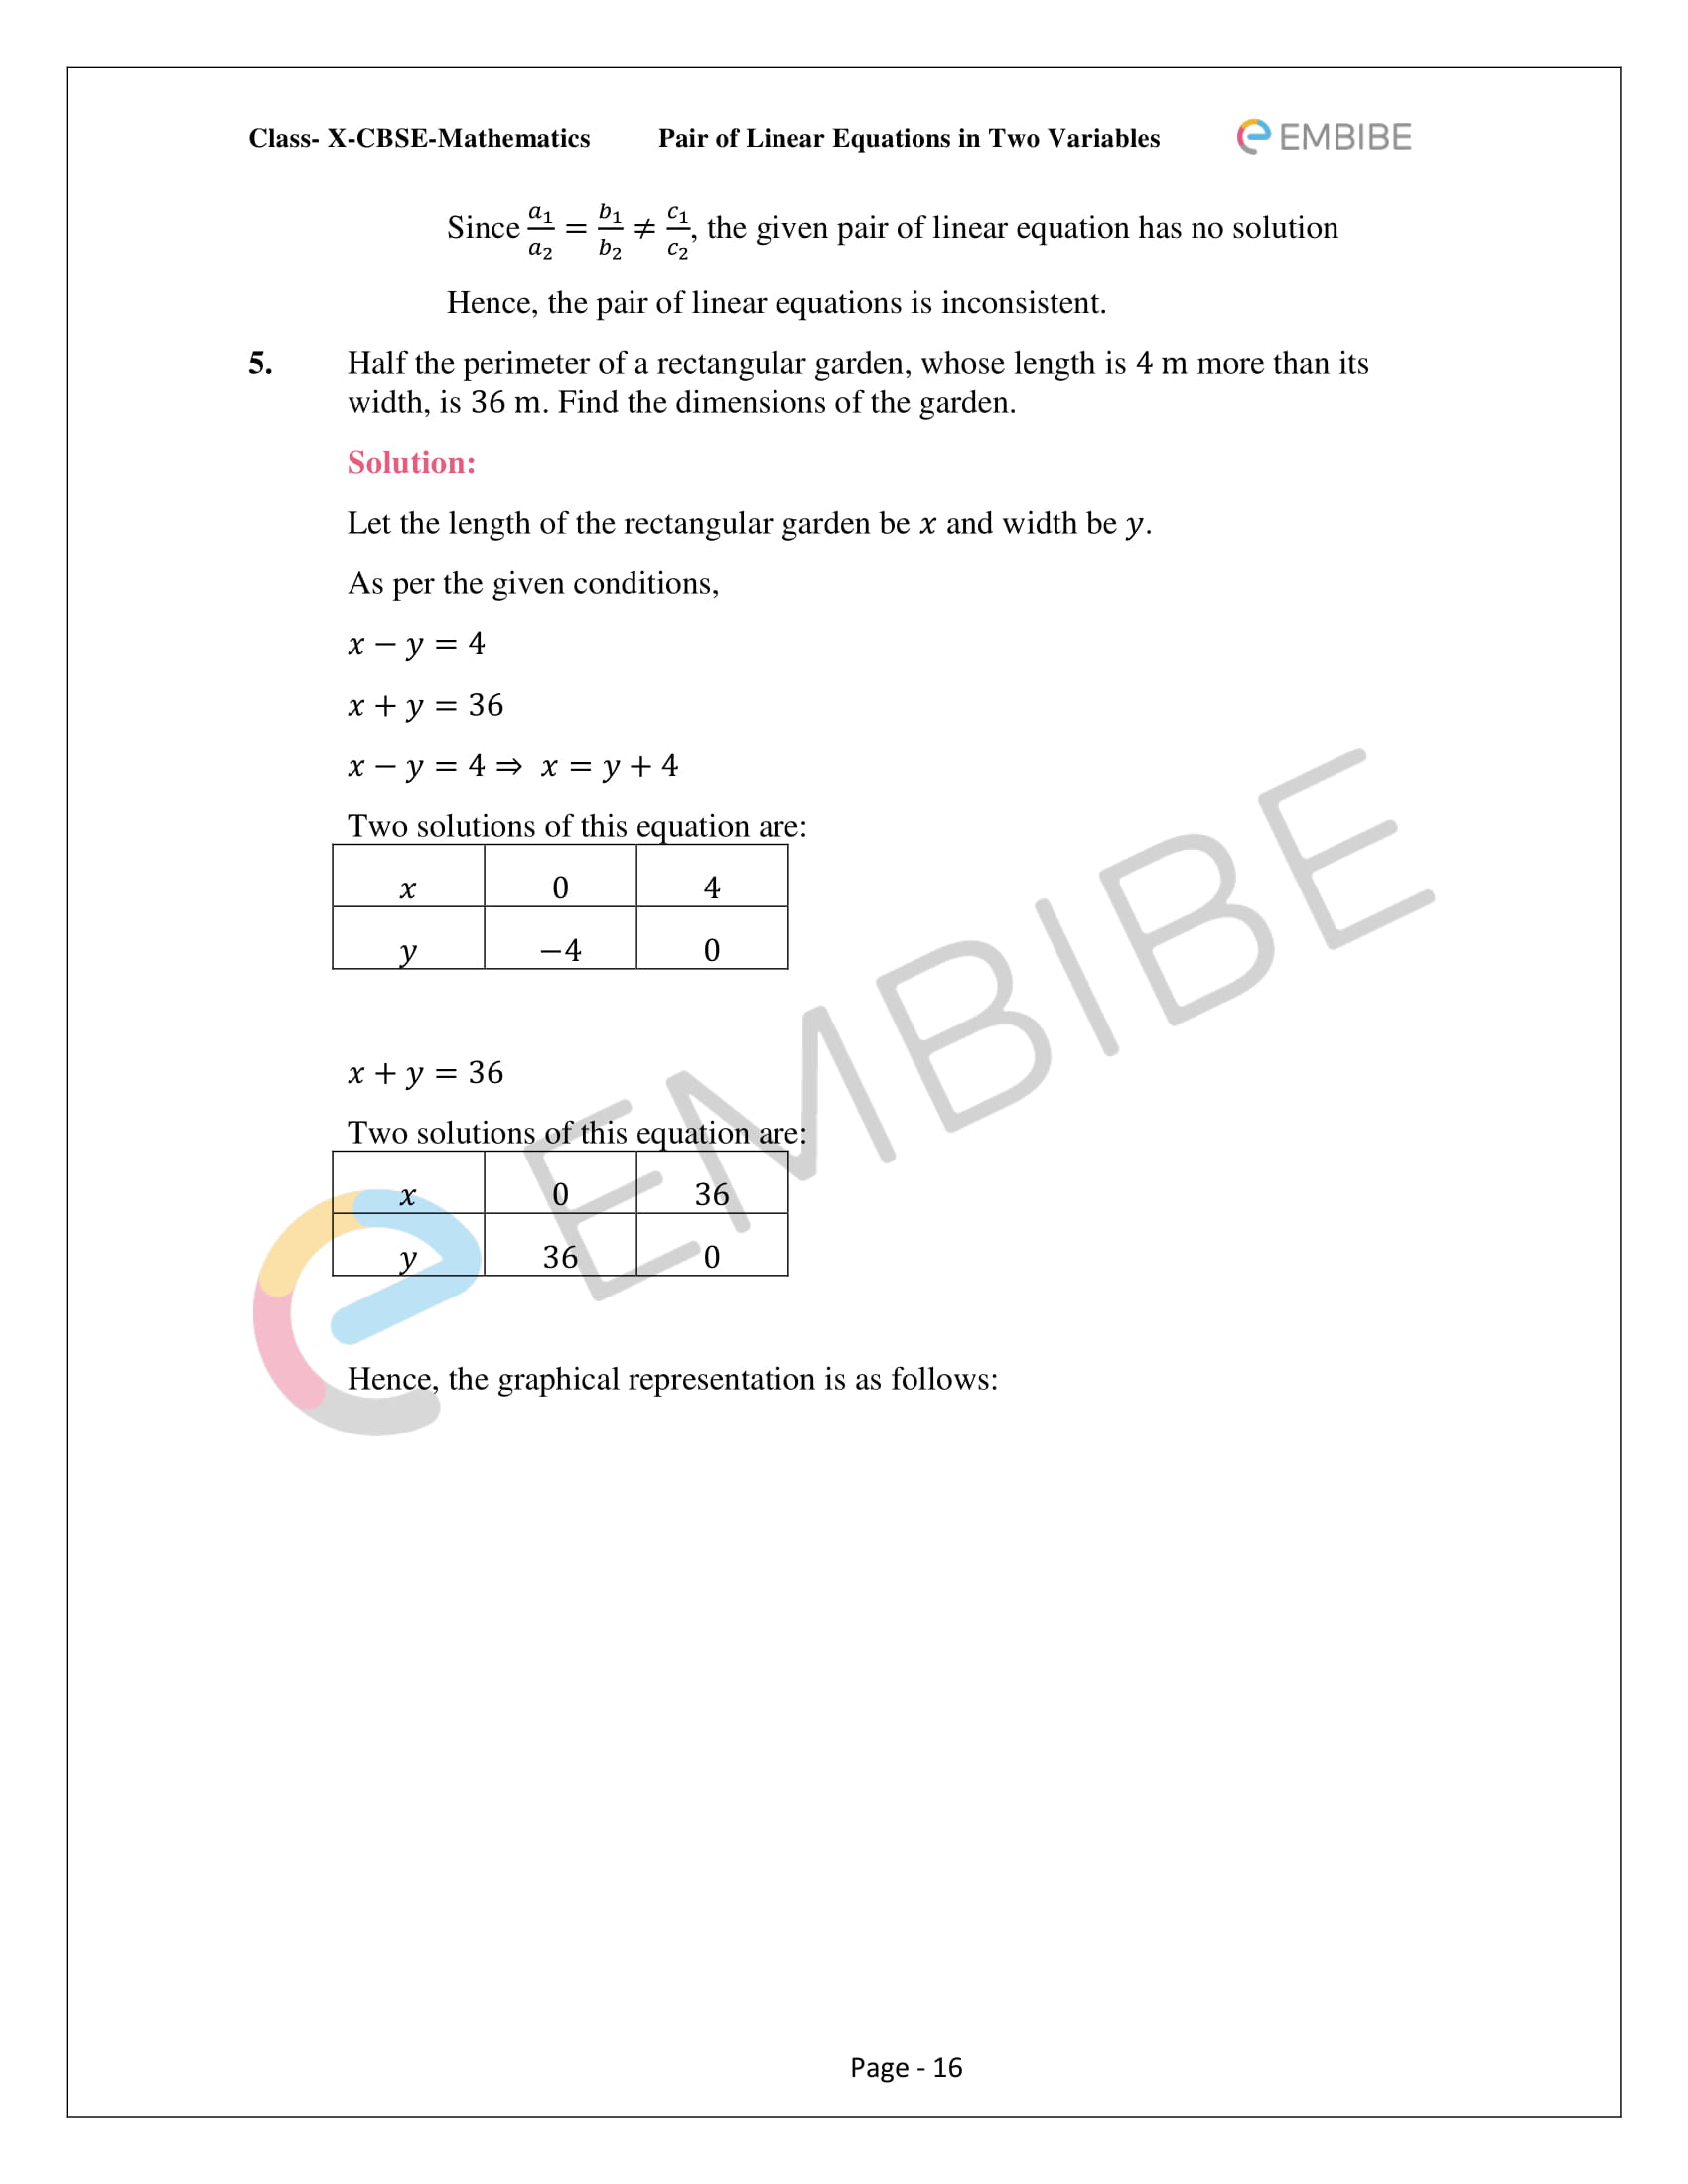 CBSE NCERT Solutions For Class 10 Maths Chapter 3 - Pair of Linear Equations In Two Variables - 16